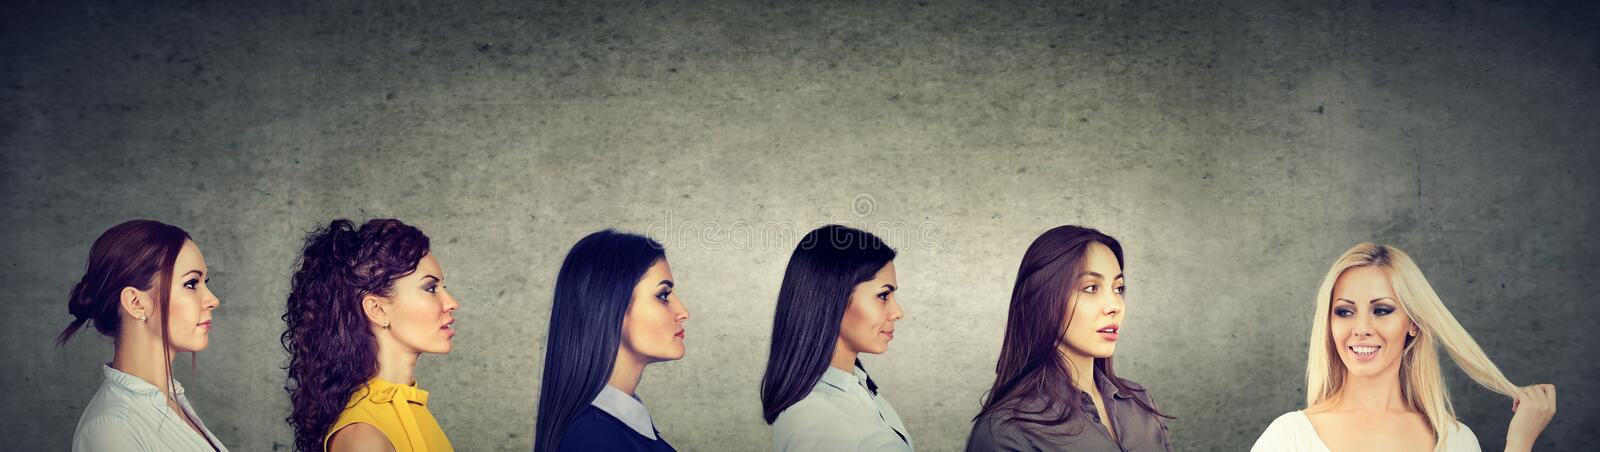 Group of brunette serious women looking at a happy blonde girl royalty free stock image